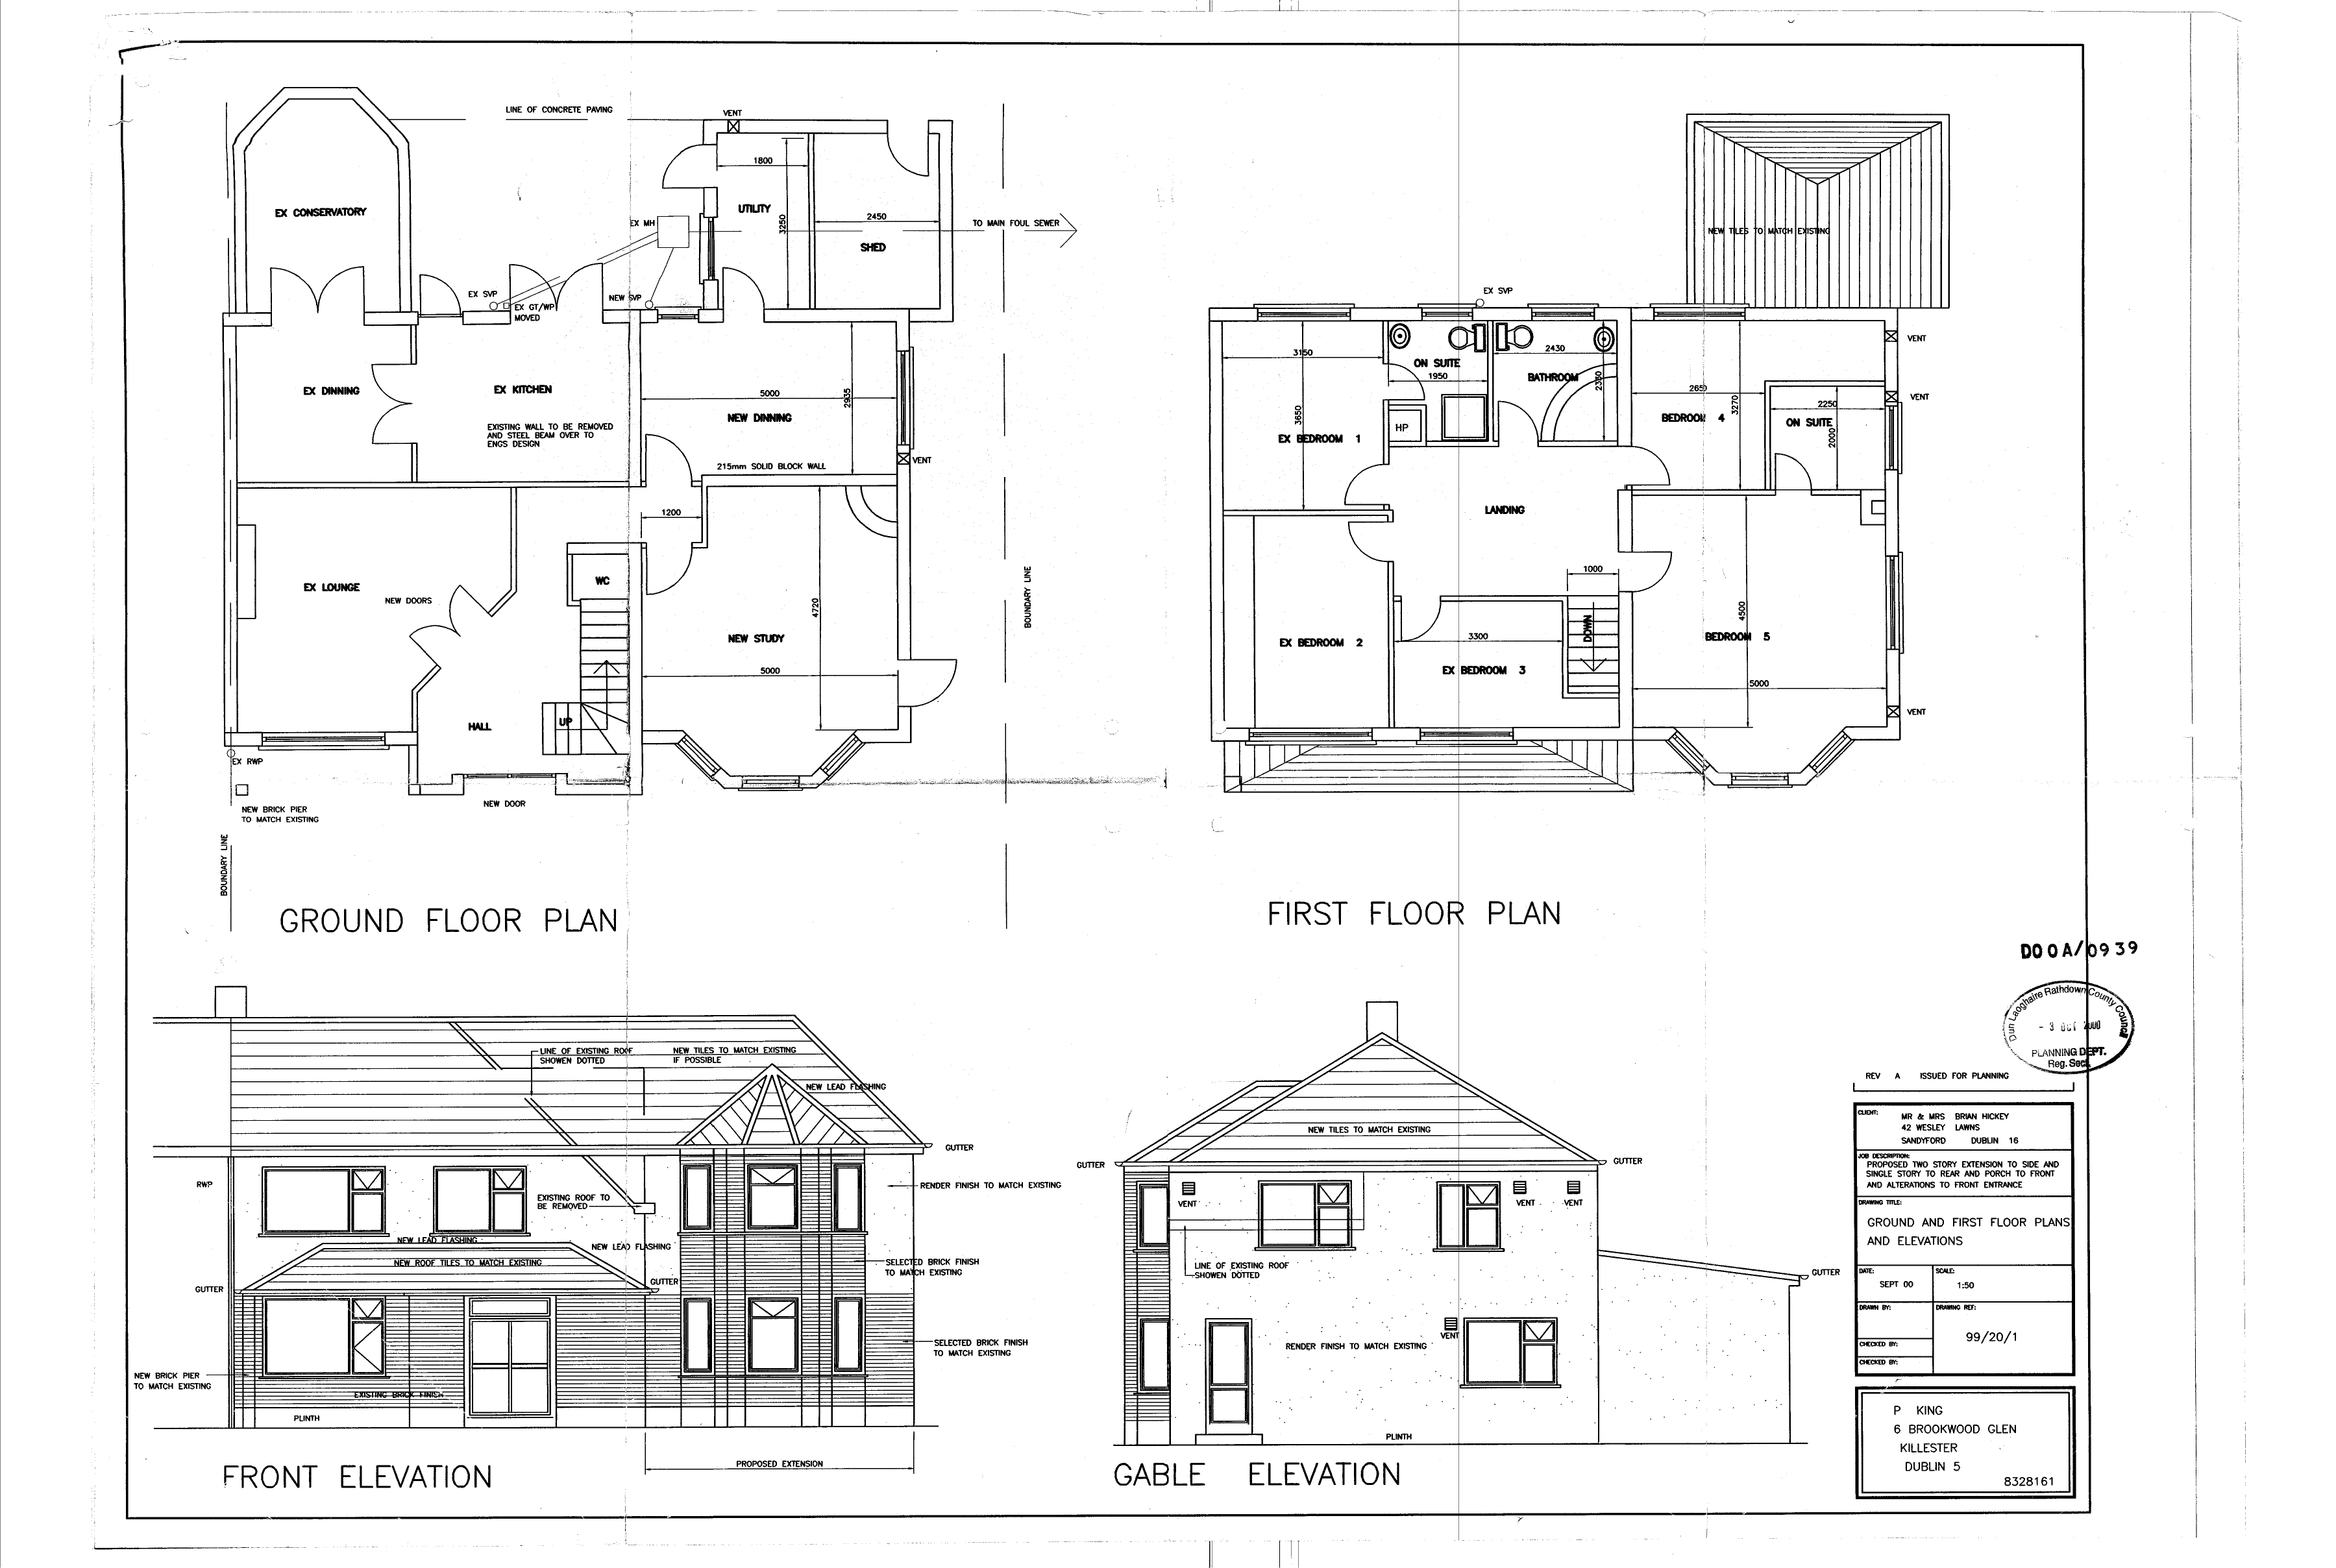 Awesome Floor Plan Elevation Vintage Bungalow House Plans Floor Plan – House Plans With Elevations And Floor Plans